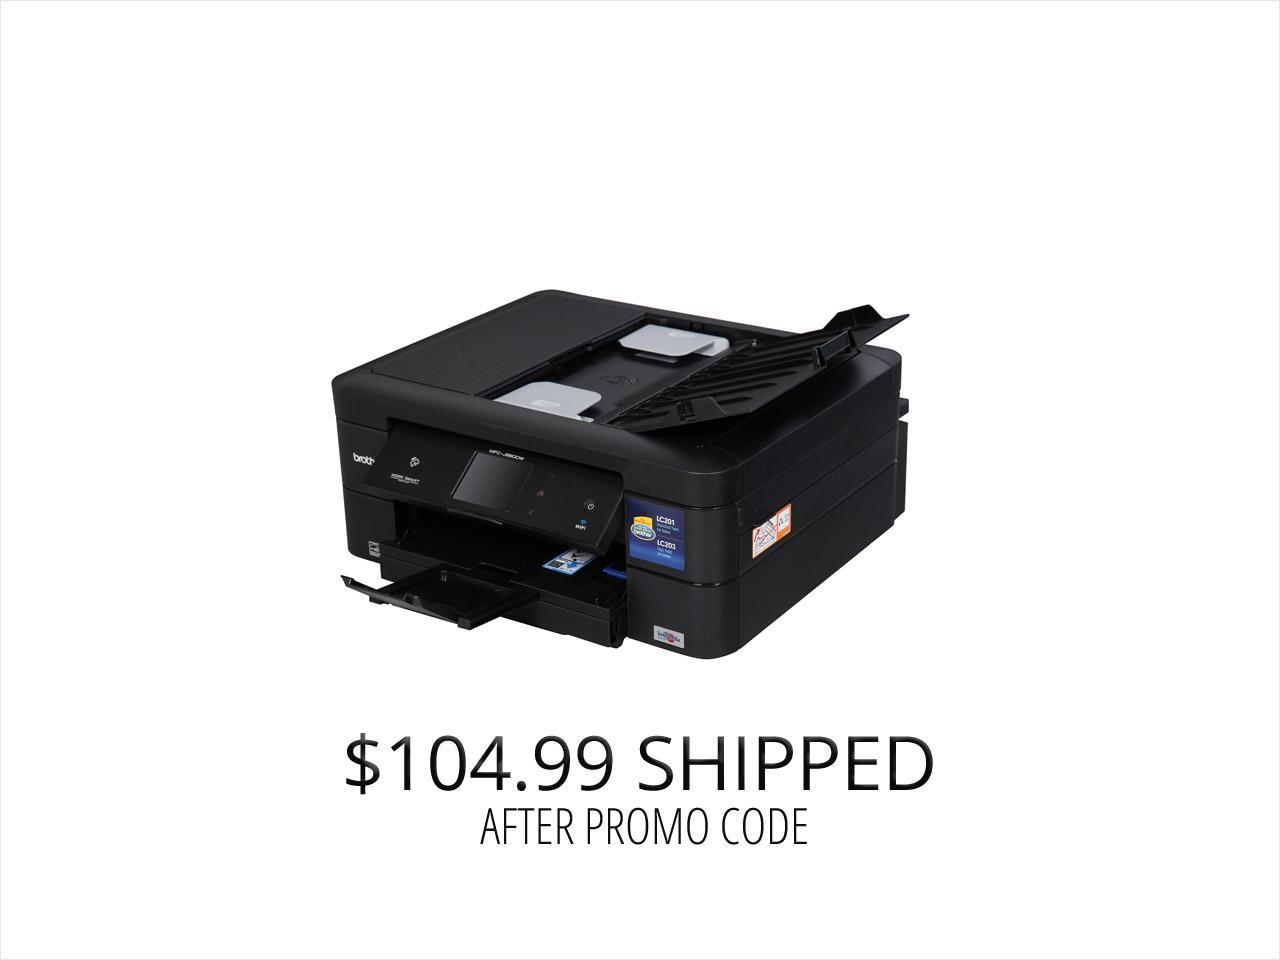 Brother MFC-J880dw Duplex Up to 6000 x 1200 DPI USB / Wireless Color Inkjet All-In-One Printer